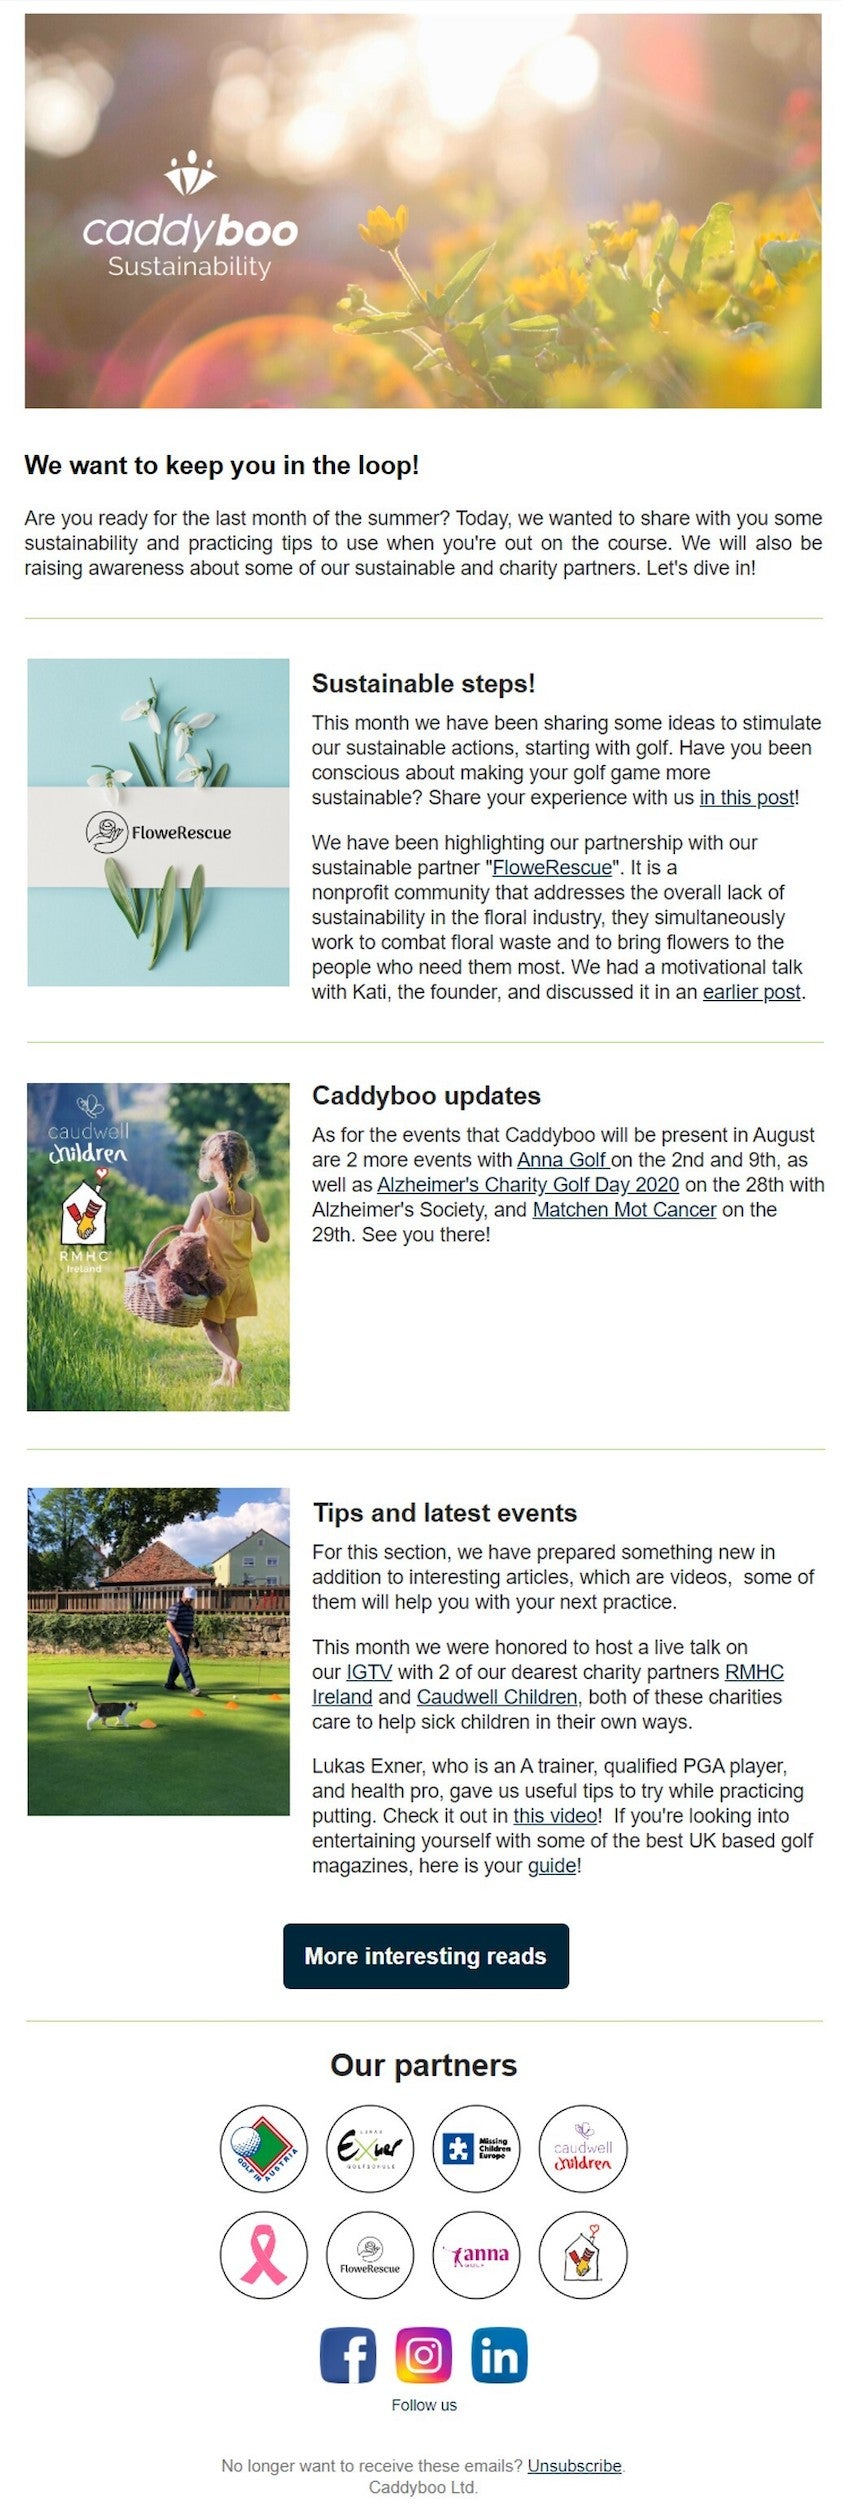 caddyboo newsletter